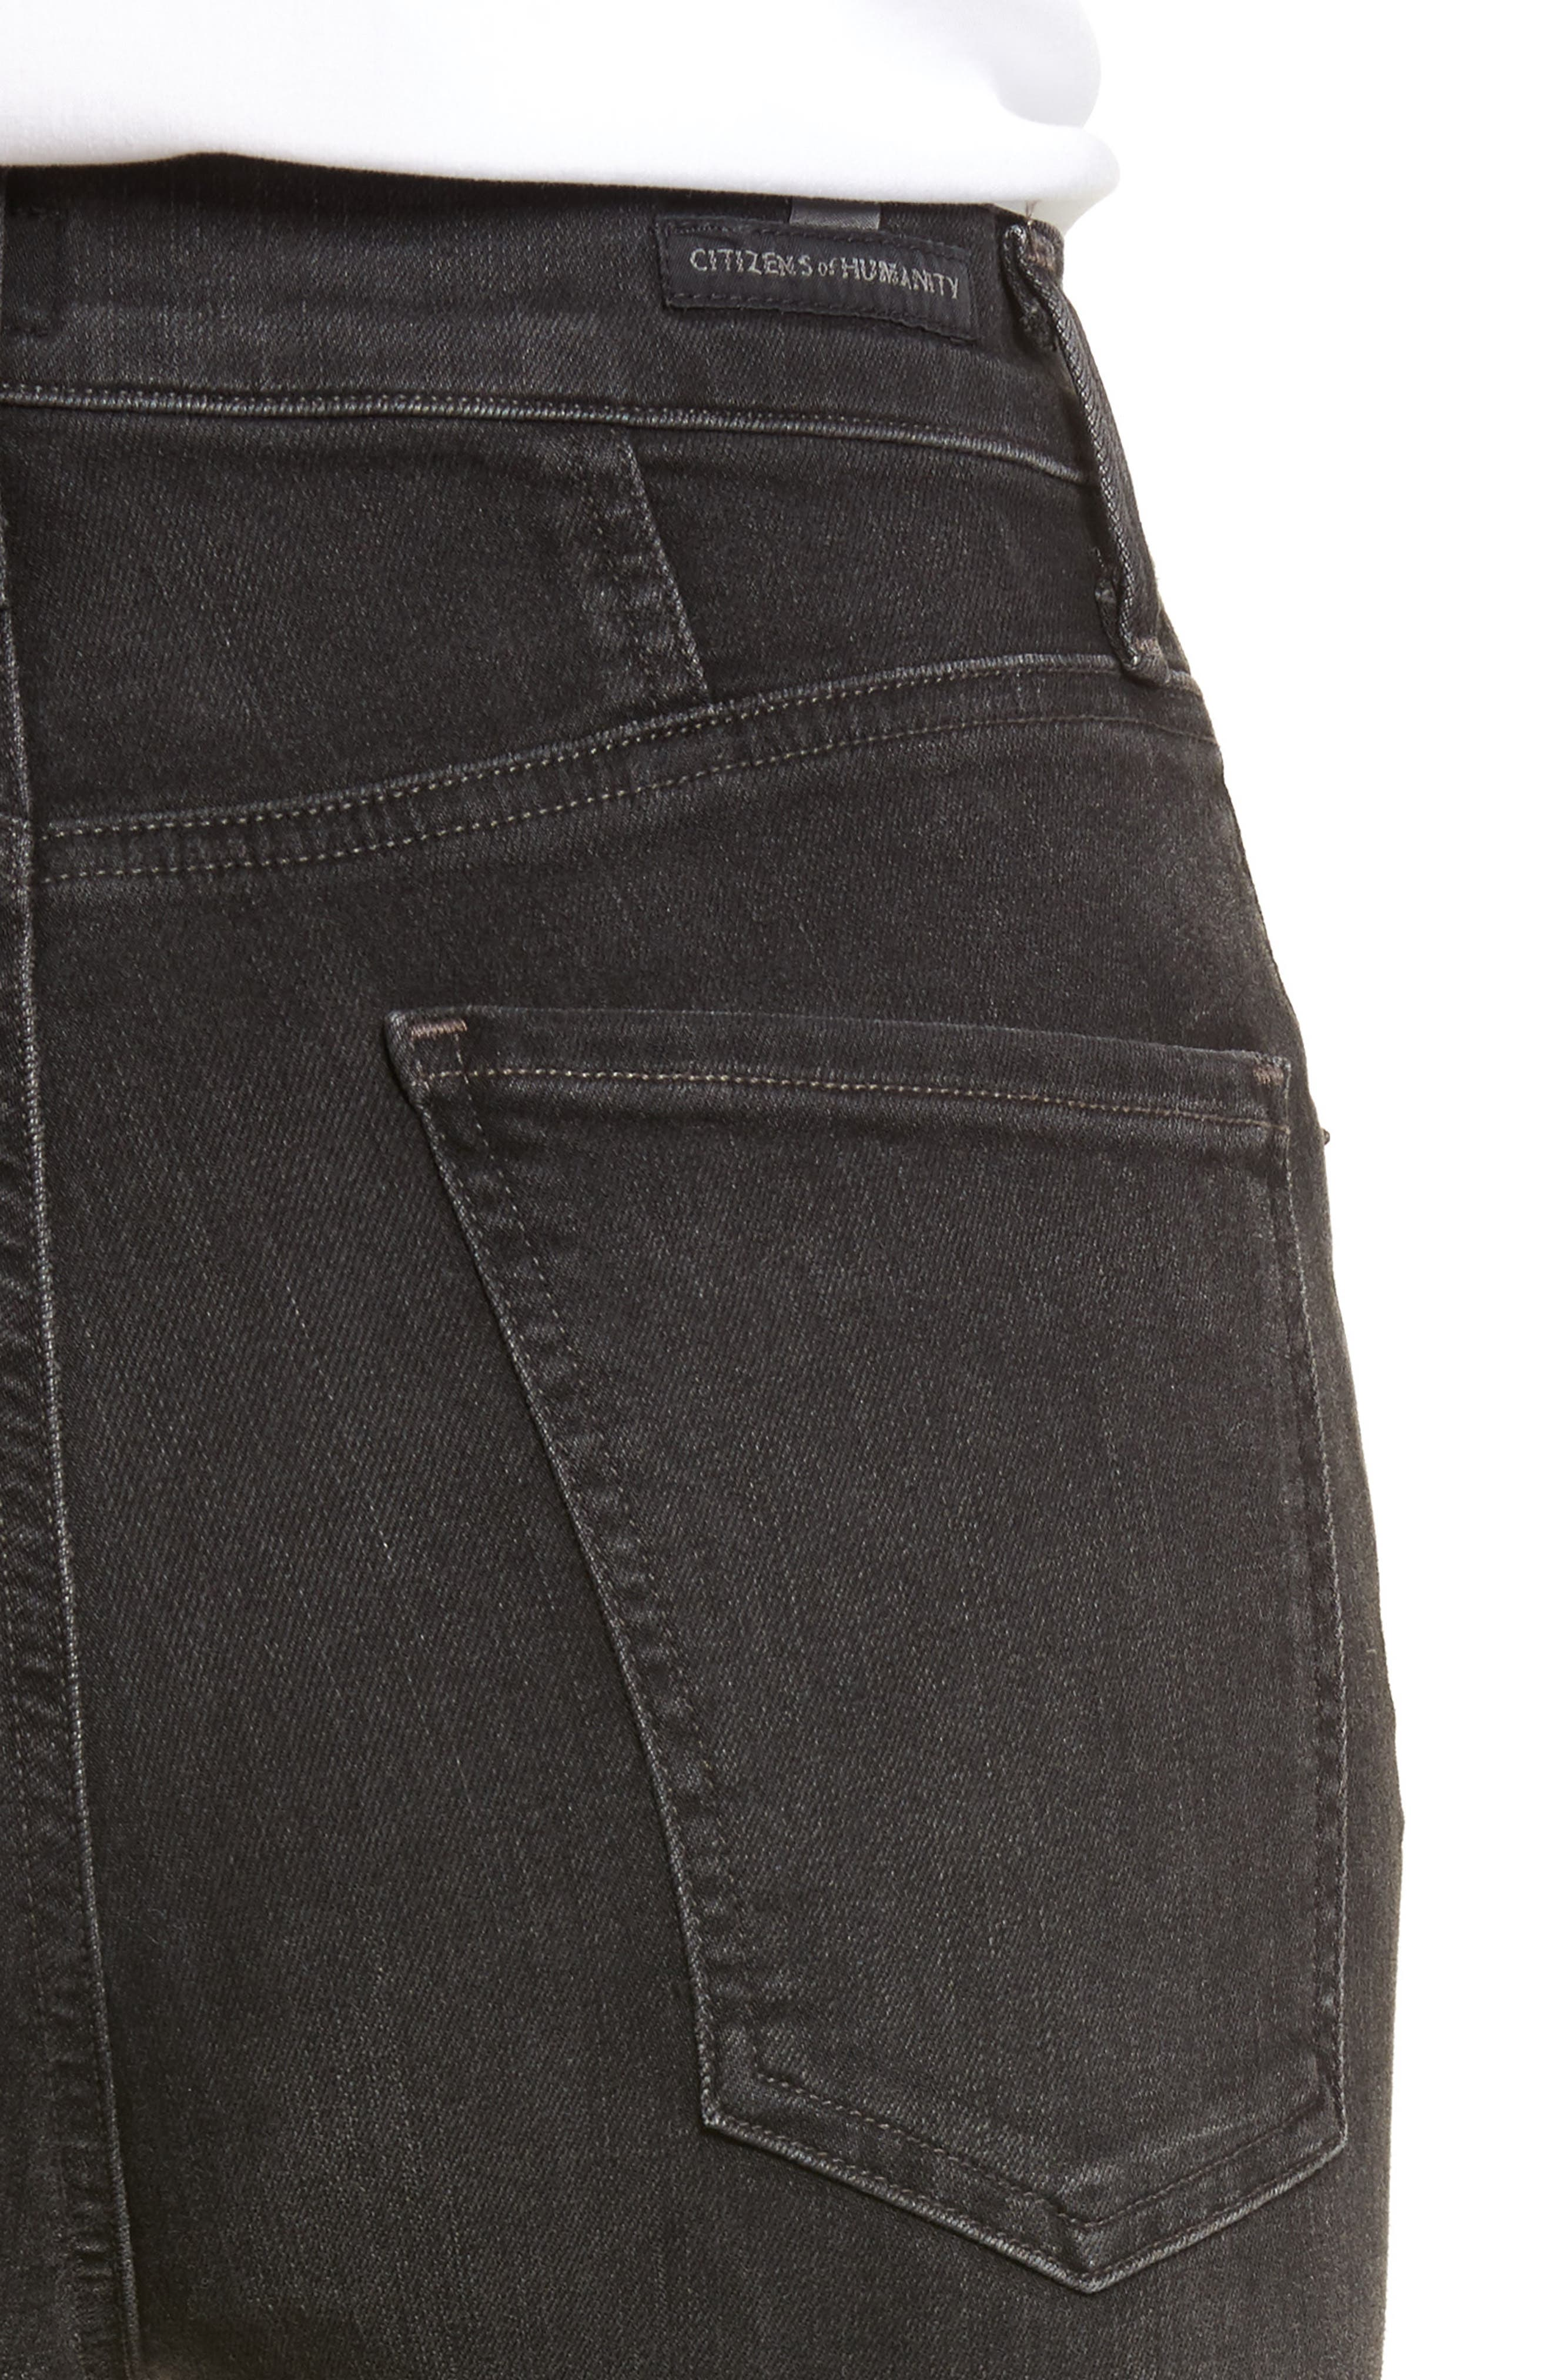 Chrissy High Waist Skinny Jeans,                             Alternate thumbnail 4, color,                             Darkness